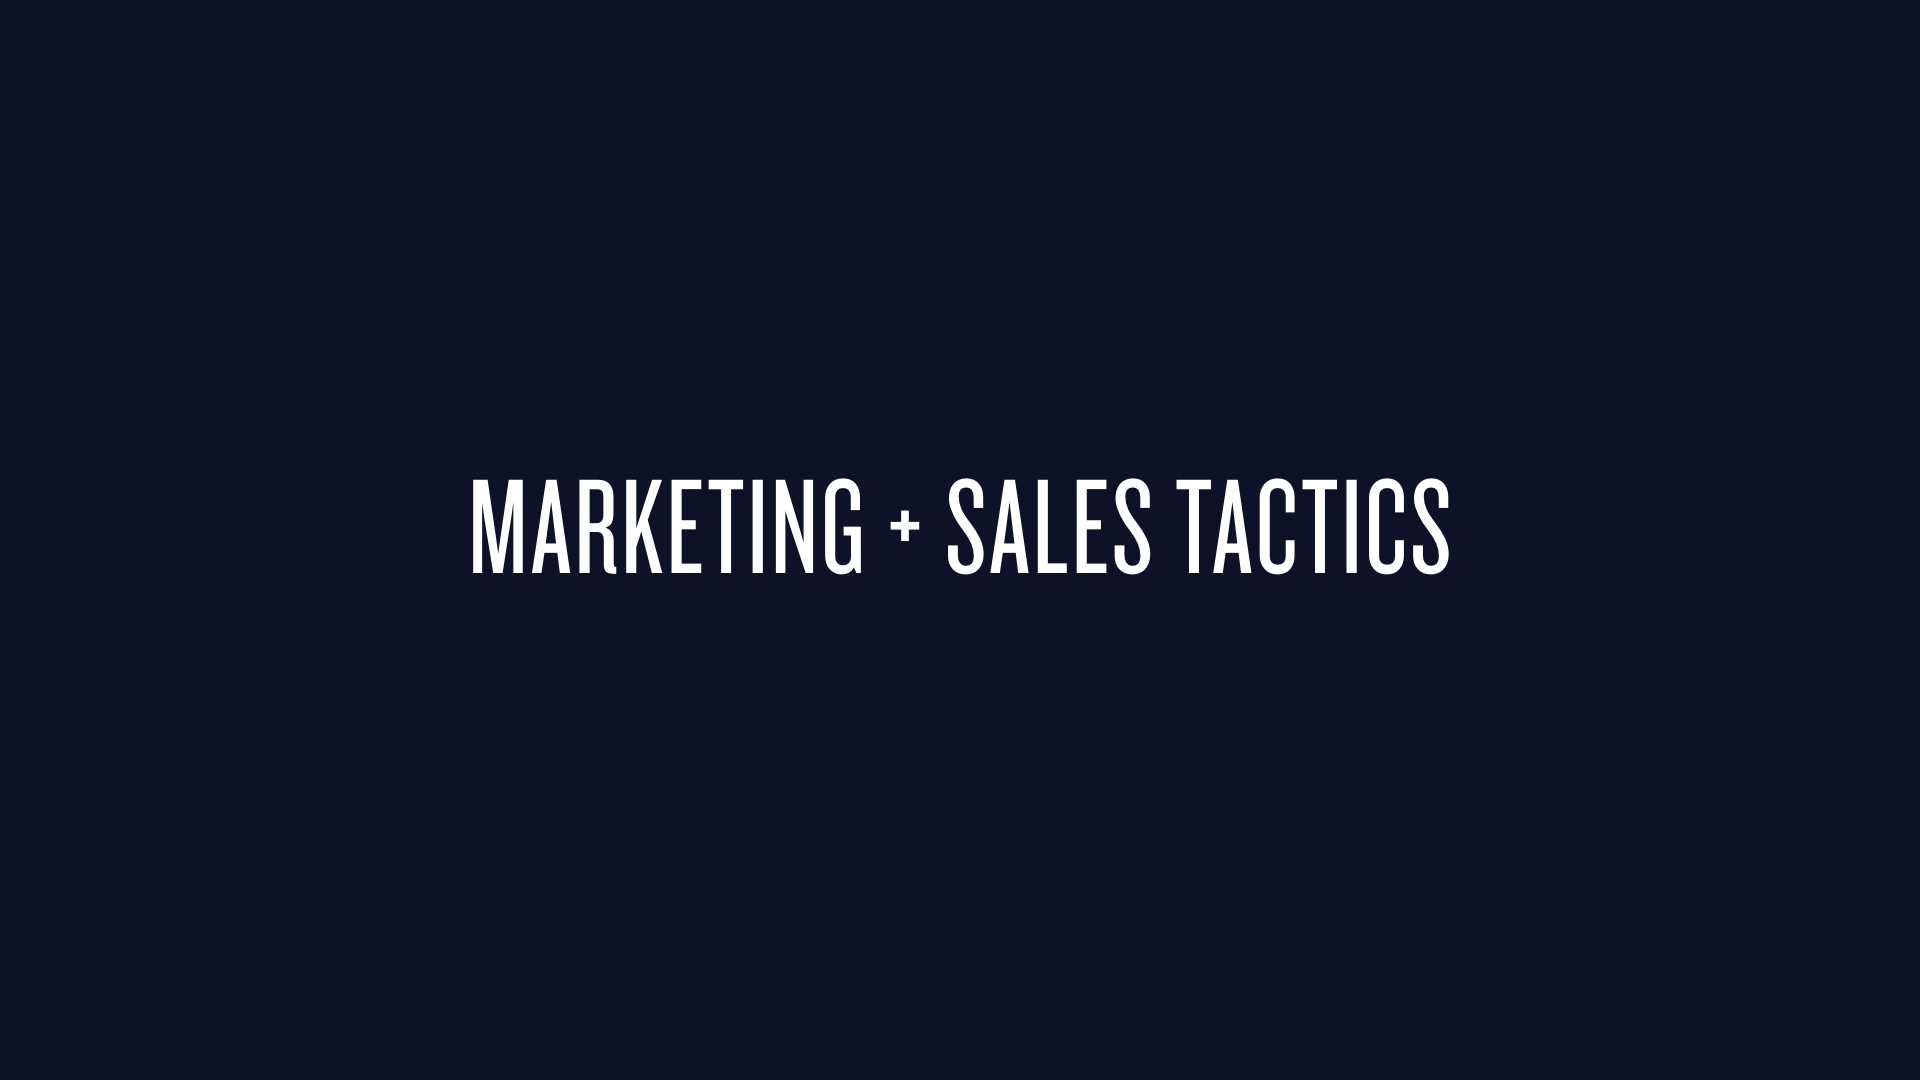 Subsection for dev-led sales and marketing tactics.